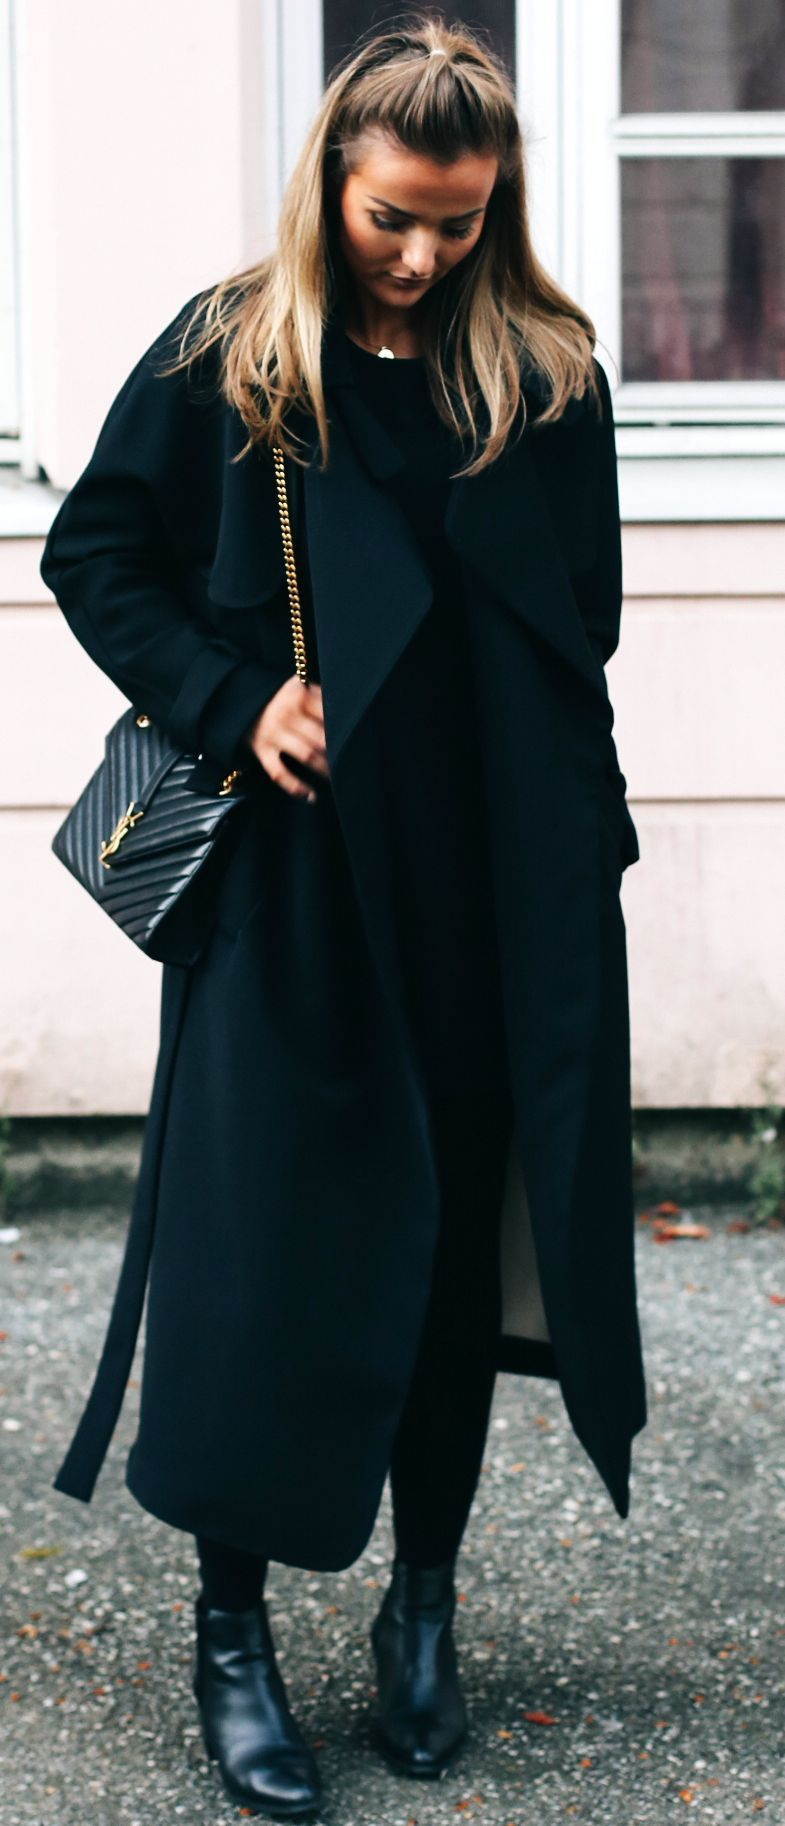 3a258ff5 Eirin Kristiansen Total Black Fall Inspo #Fashionistas | All Black ...